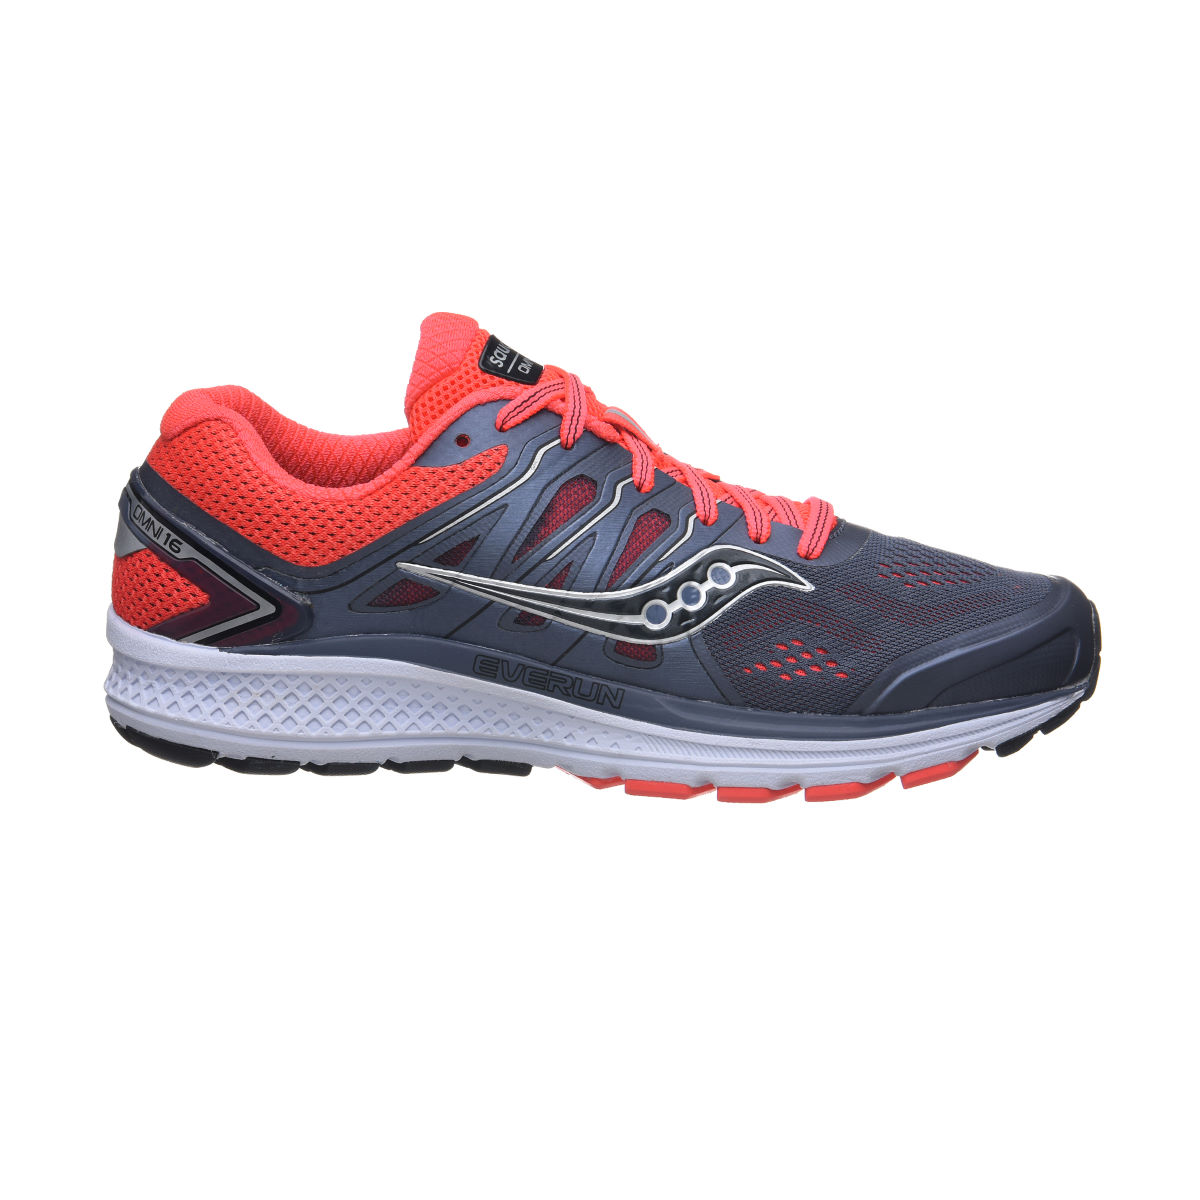 Saucony Women's Omni 16 Shoes   Running Shoes